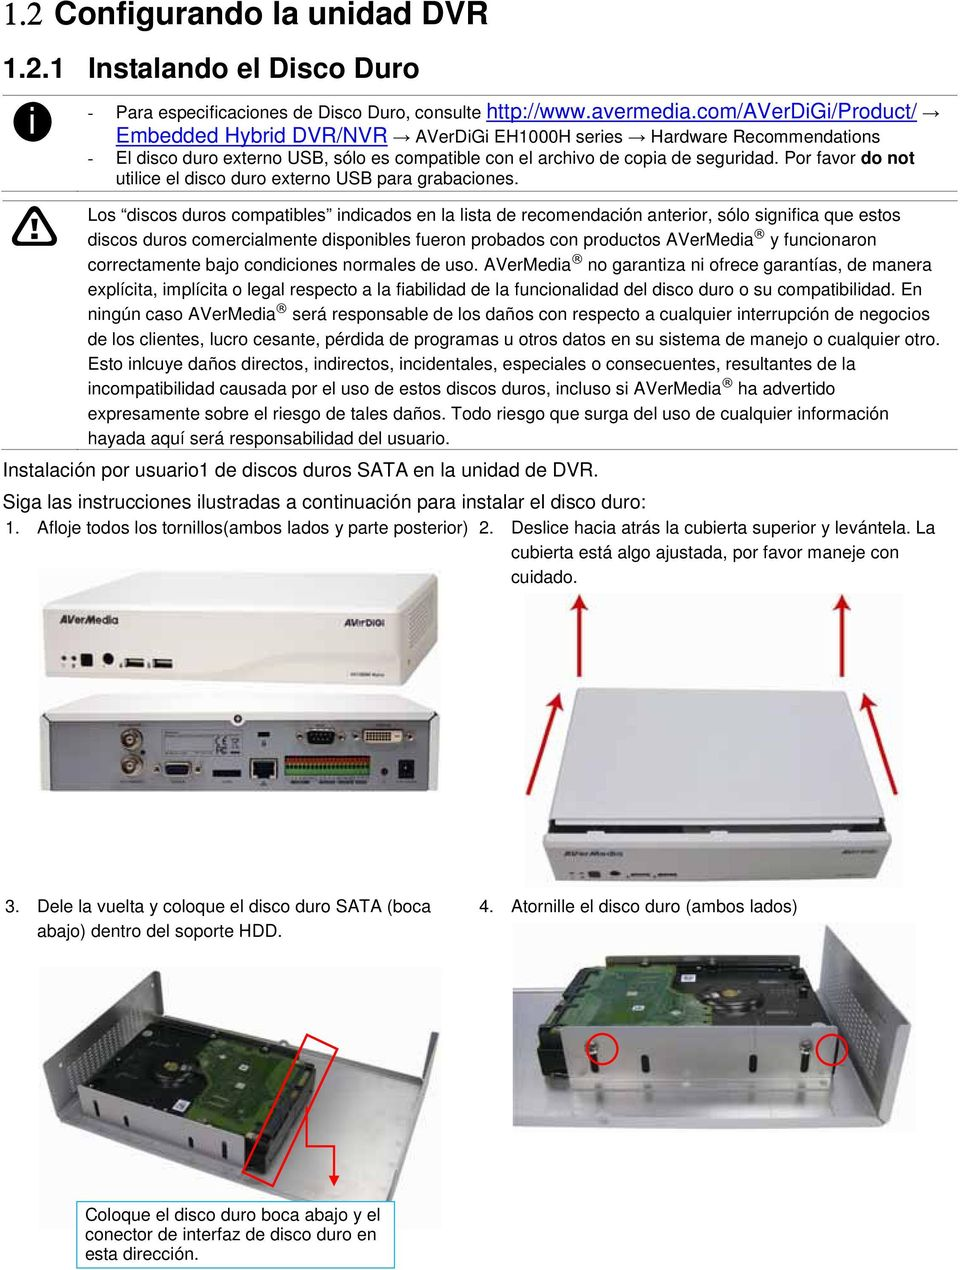 Por favor do not utilice el disco duro externo USB para grabaciones.